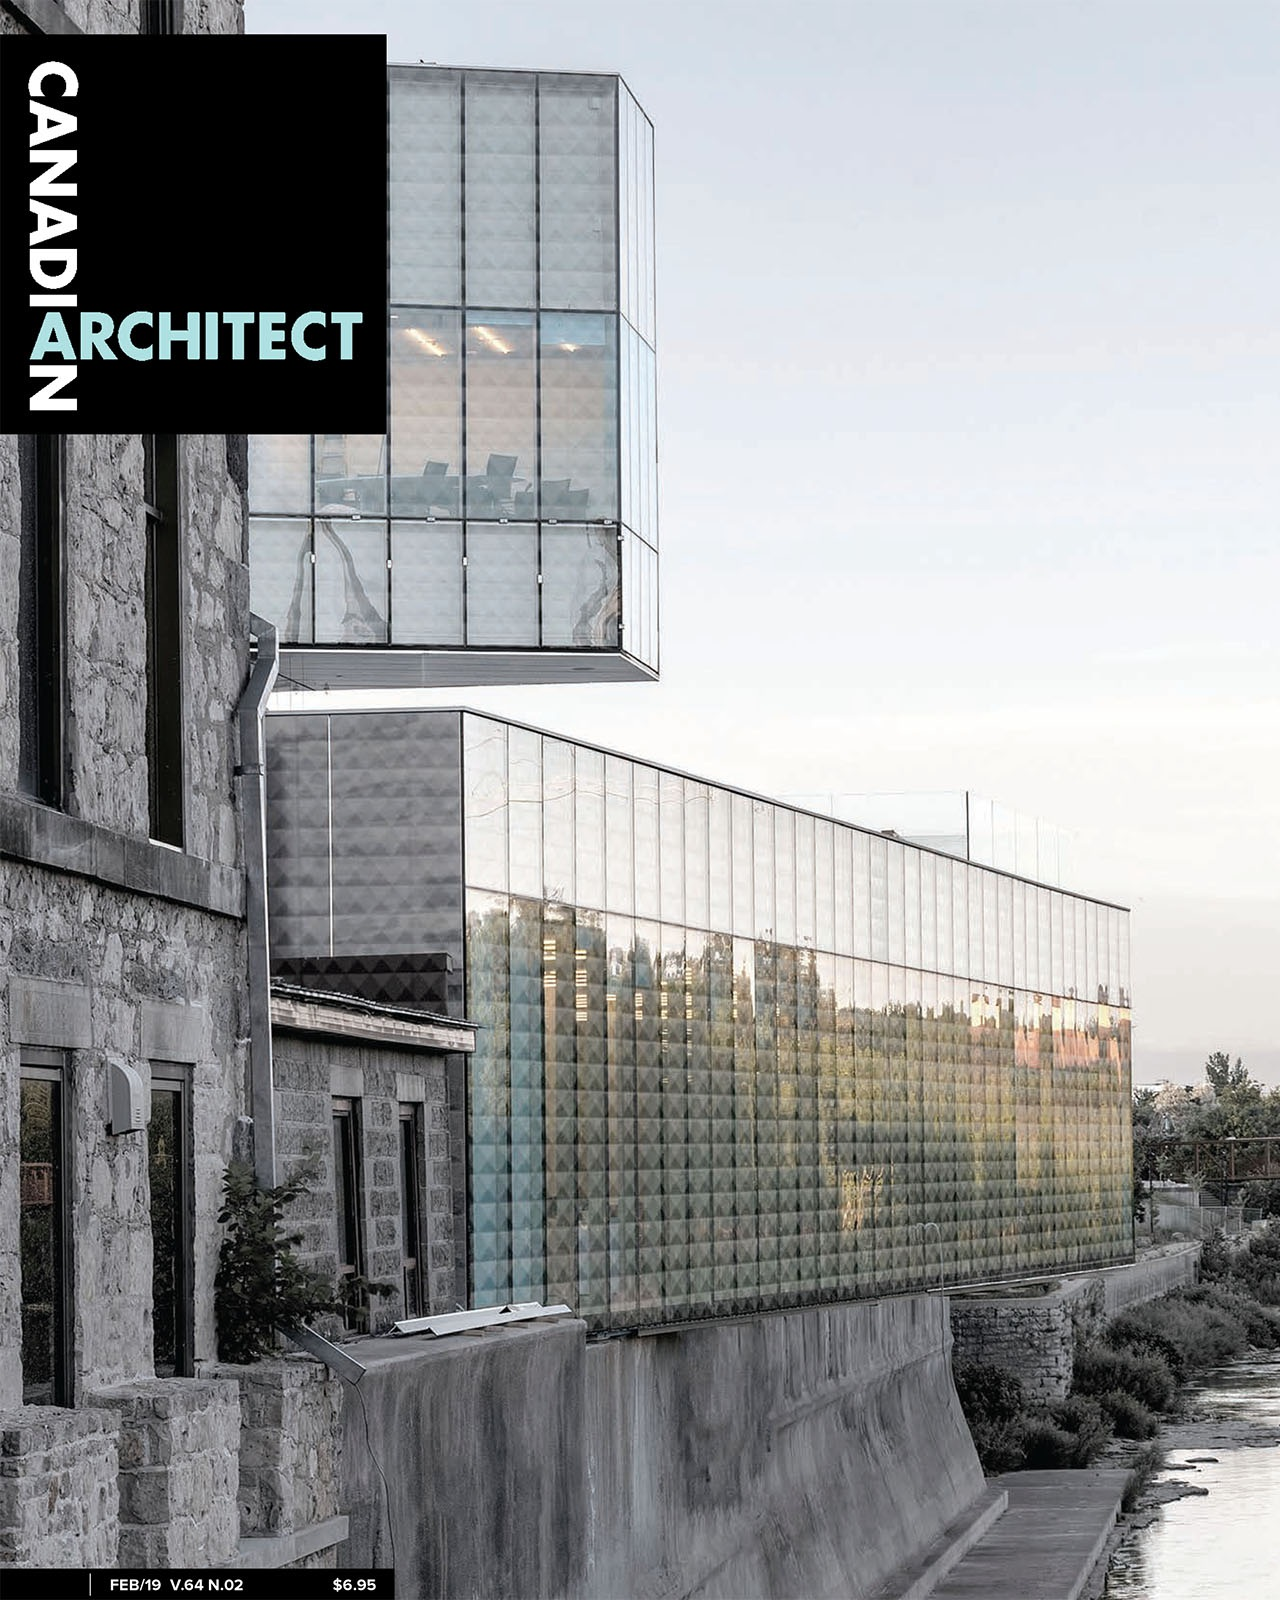 Canadian Architect Cover - February 2019 - Image published on the cover of Canadian Architect, February 2019 edition.